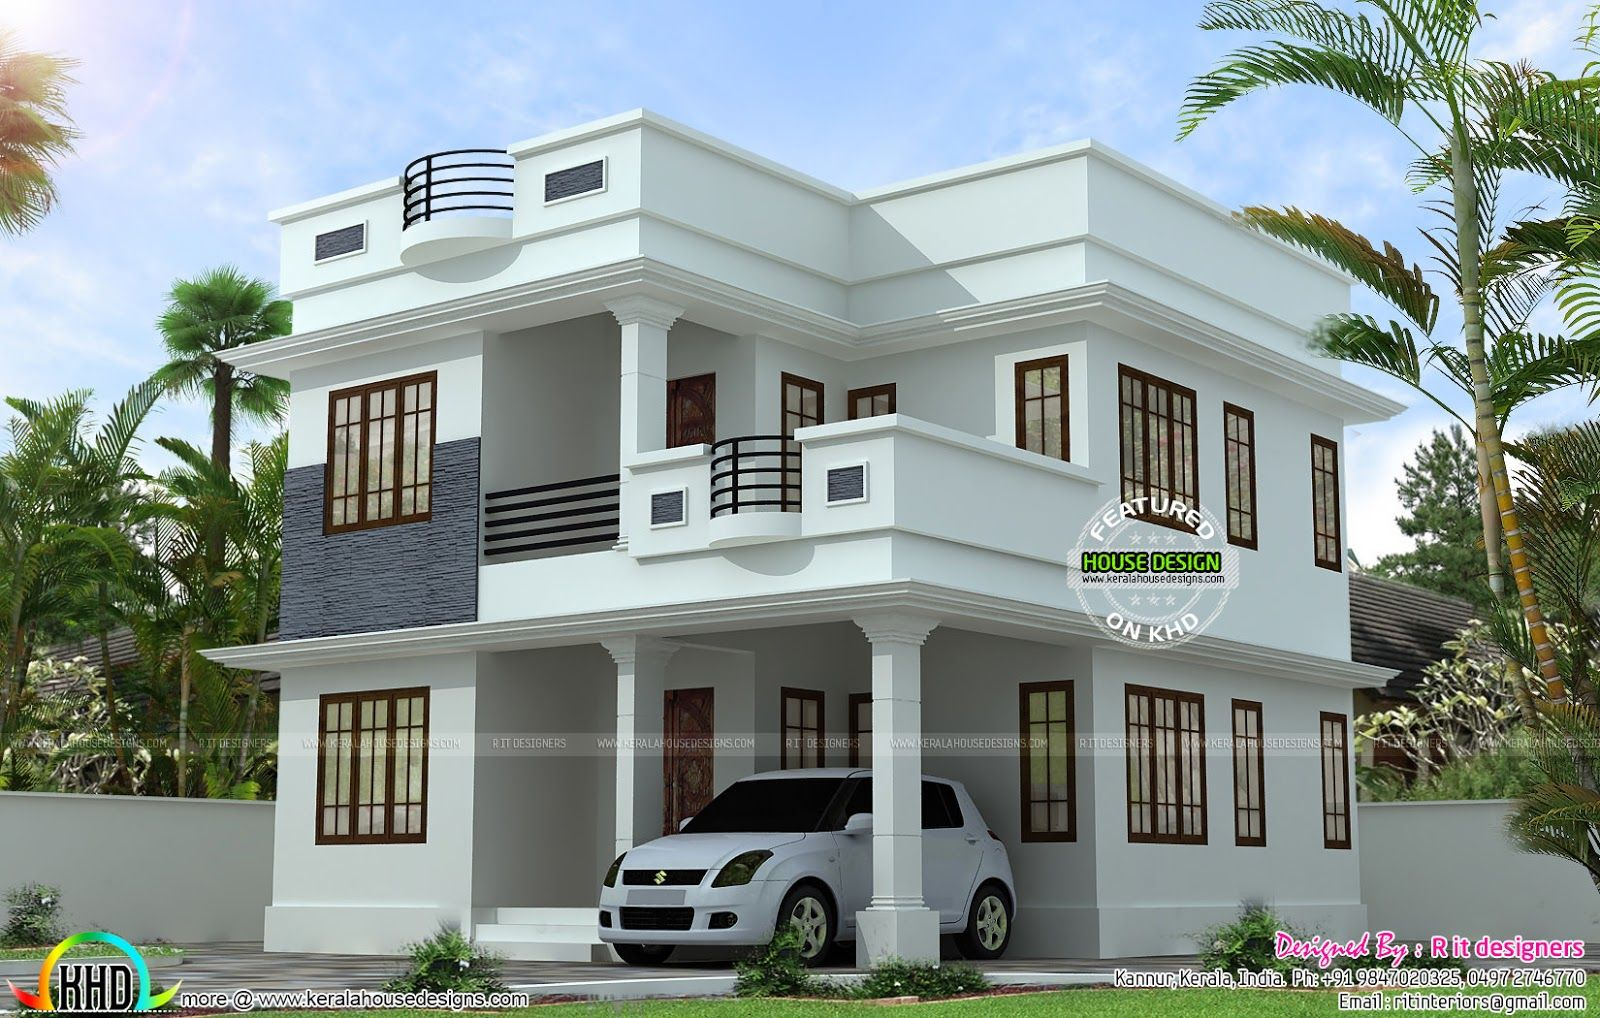 home design & decor Bungalow house design Kerala house design Simple house design